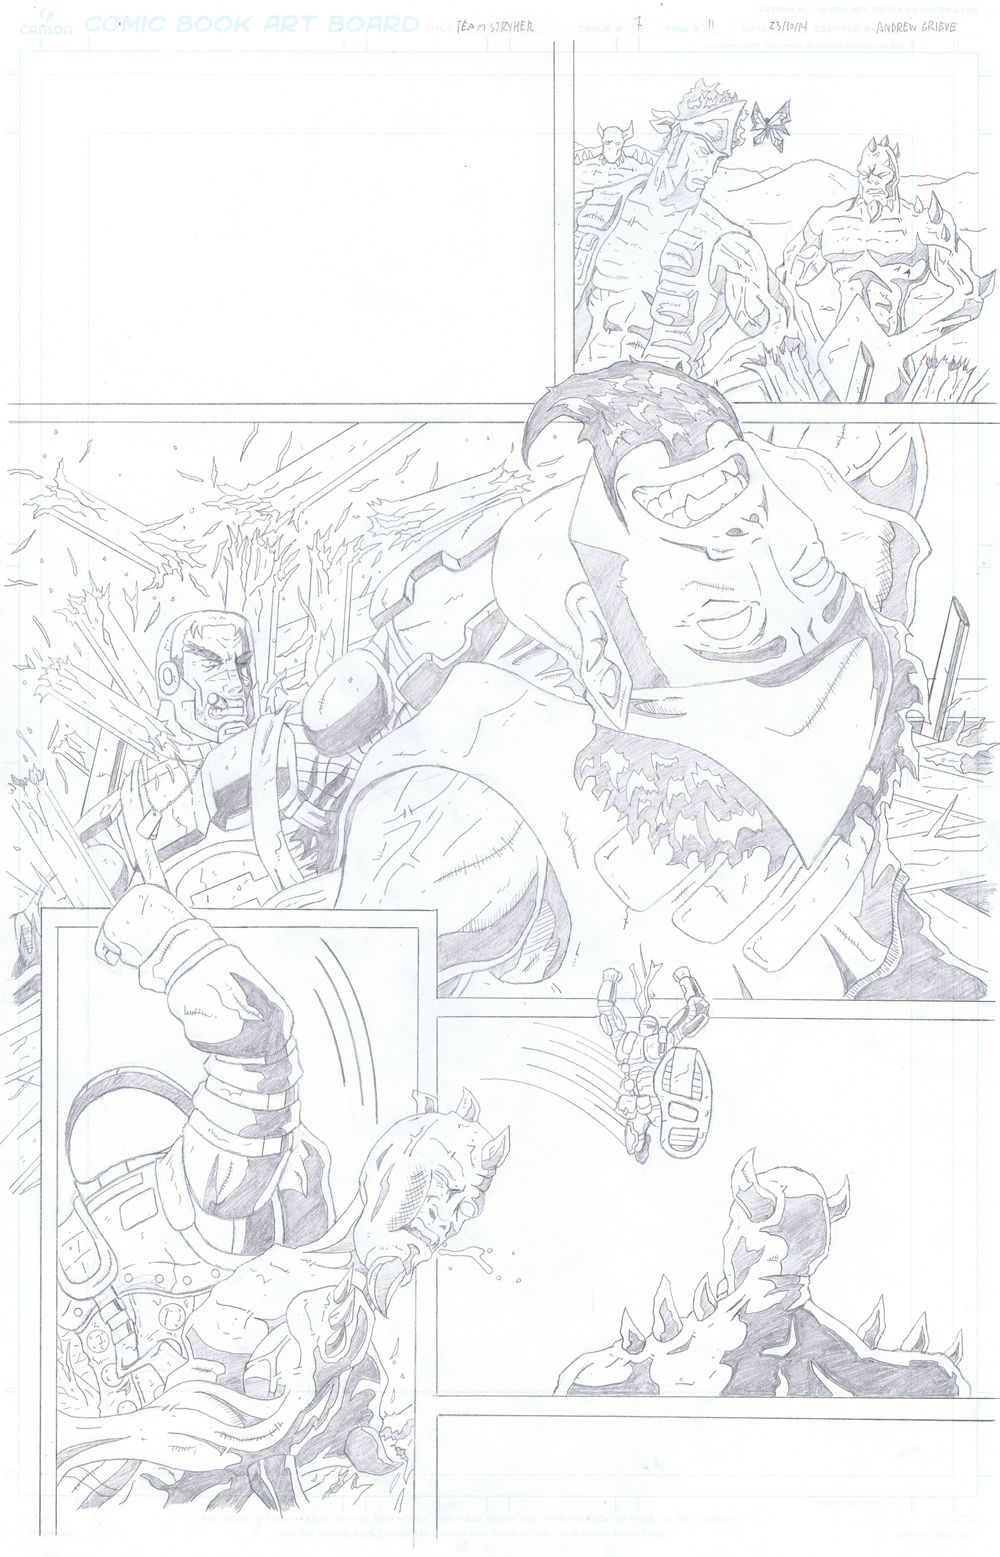 MISSION 007: PAGE 11 PENCIL